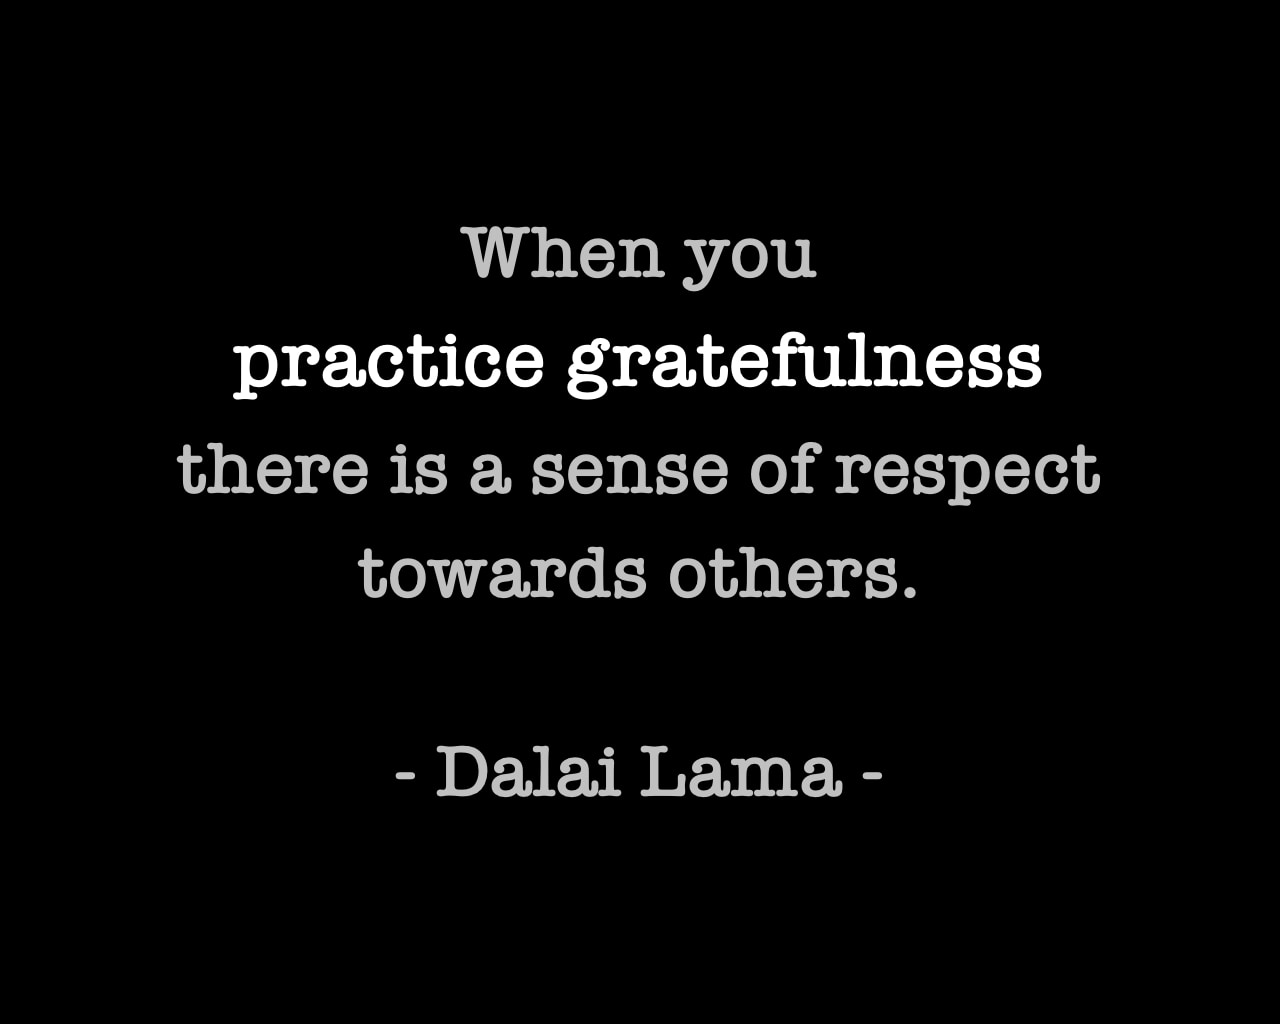 Dalai Lama Quote - When you practice gratefulness there is a sense of respect towards others.